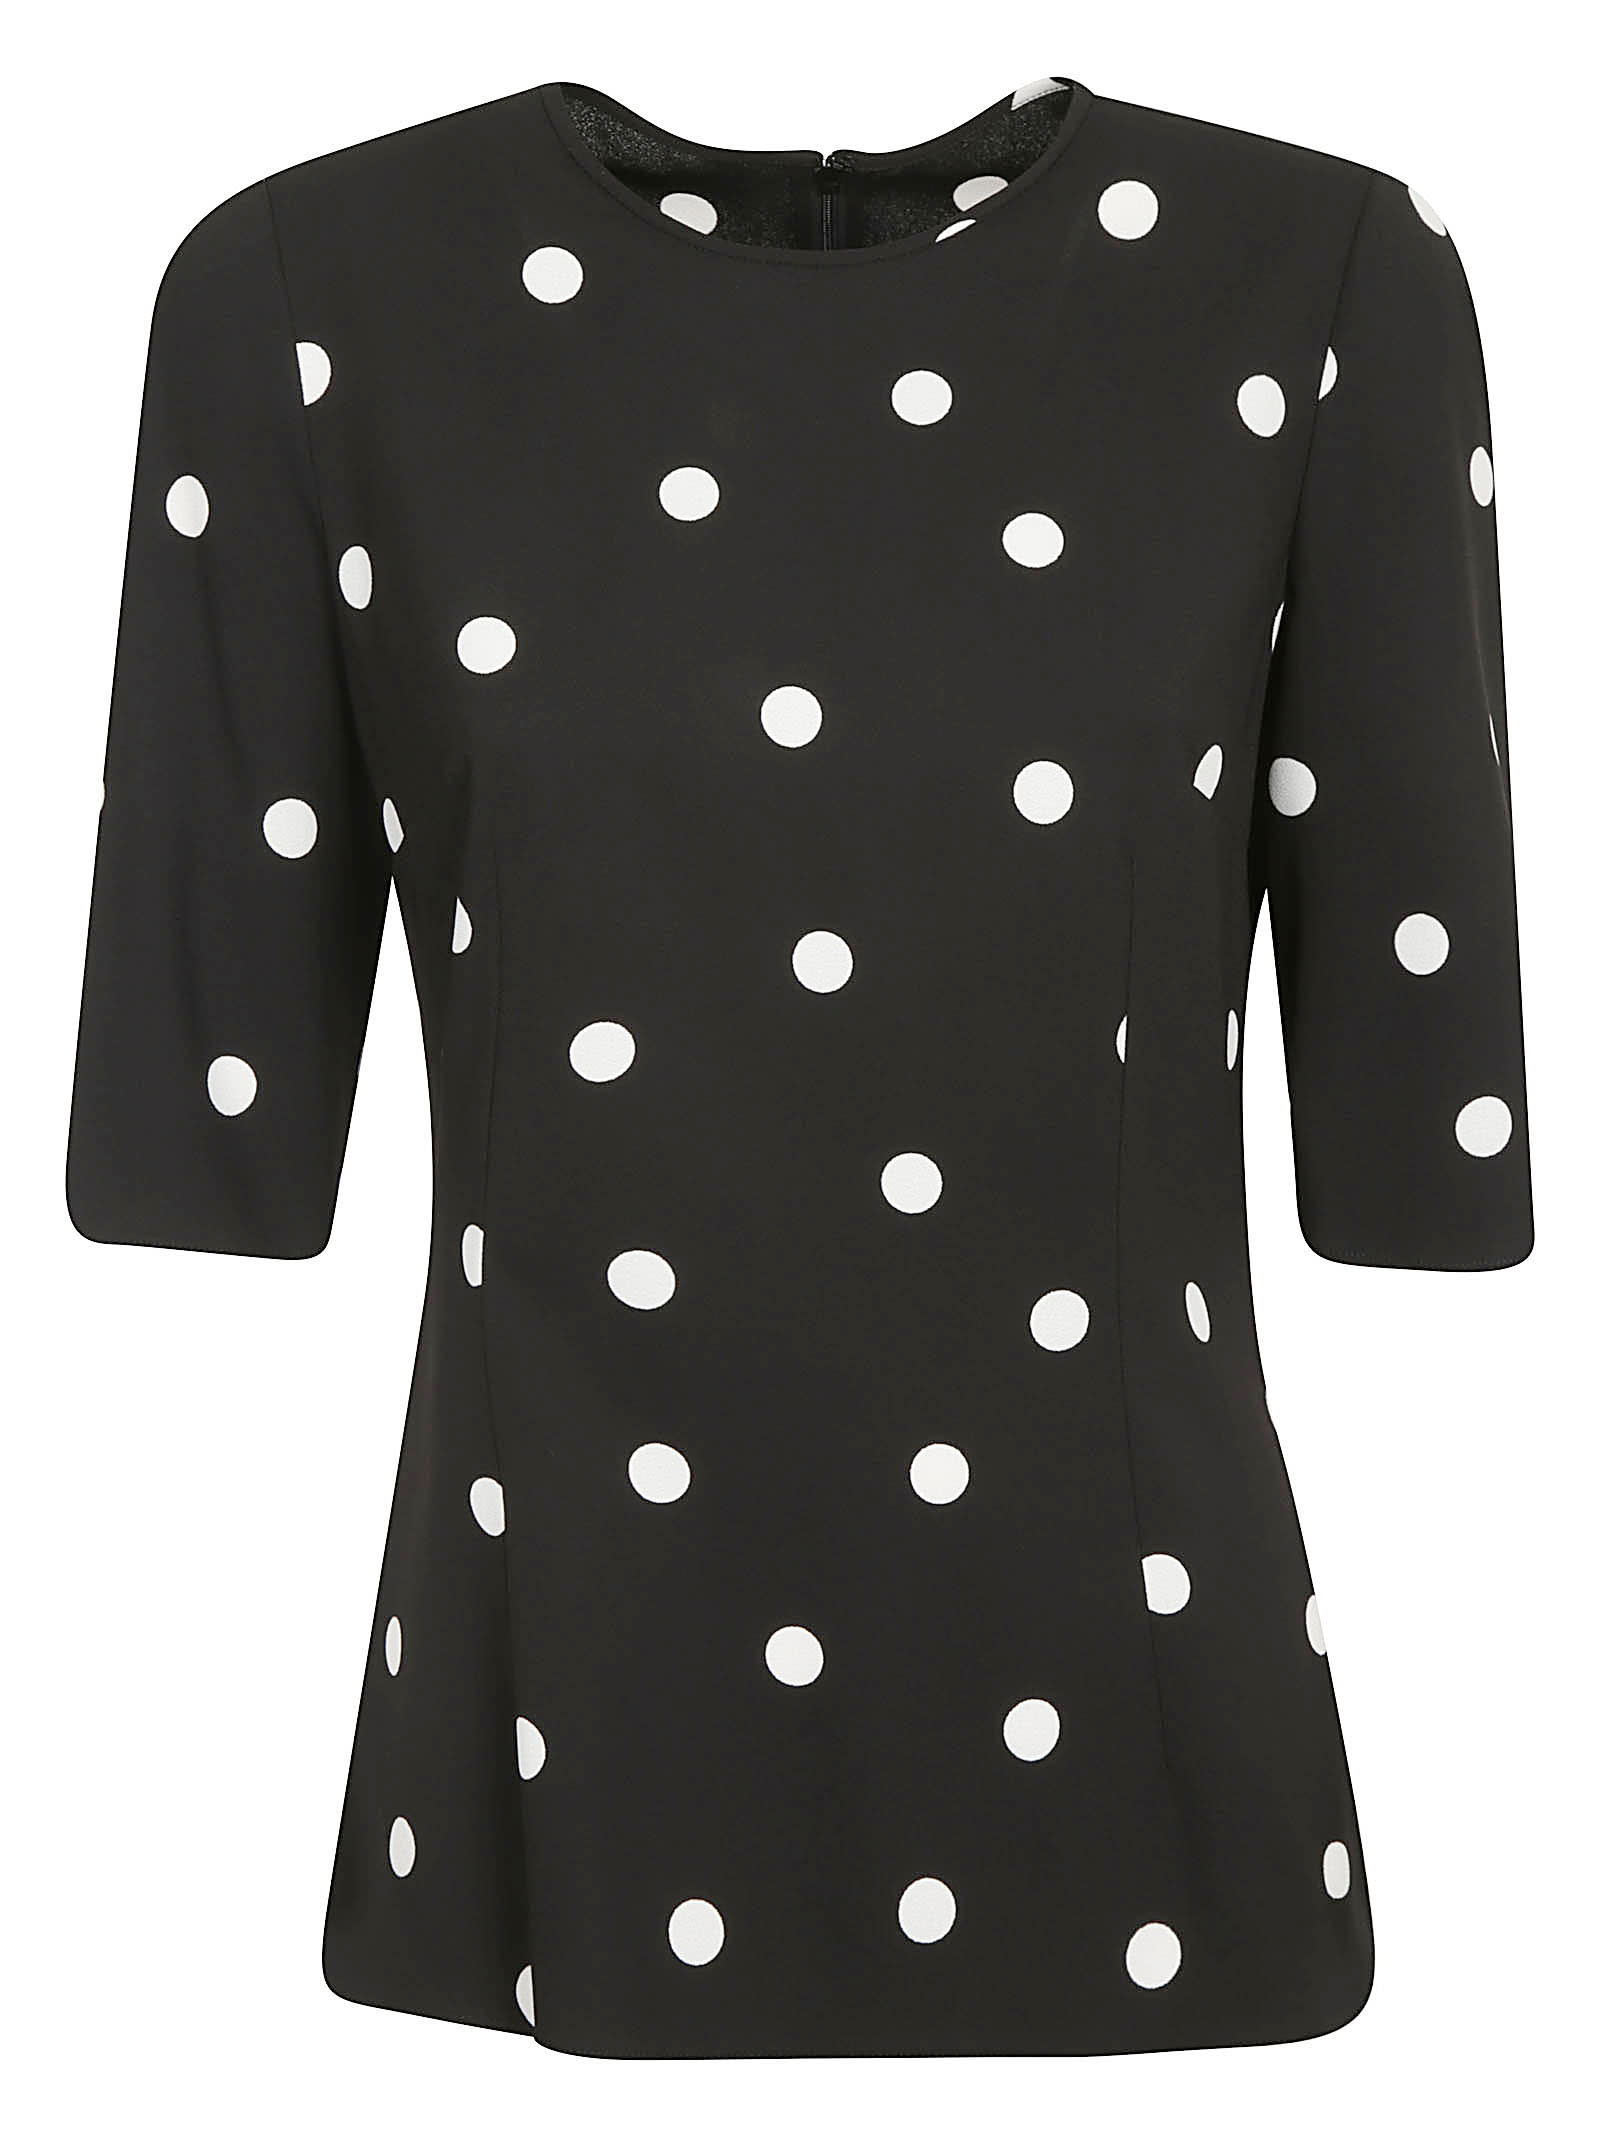 Dolce & Gabbana Dotted Print Top